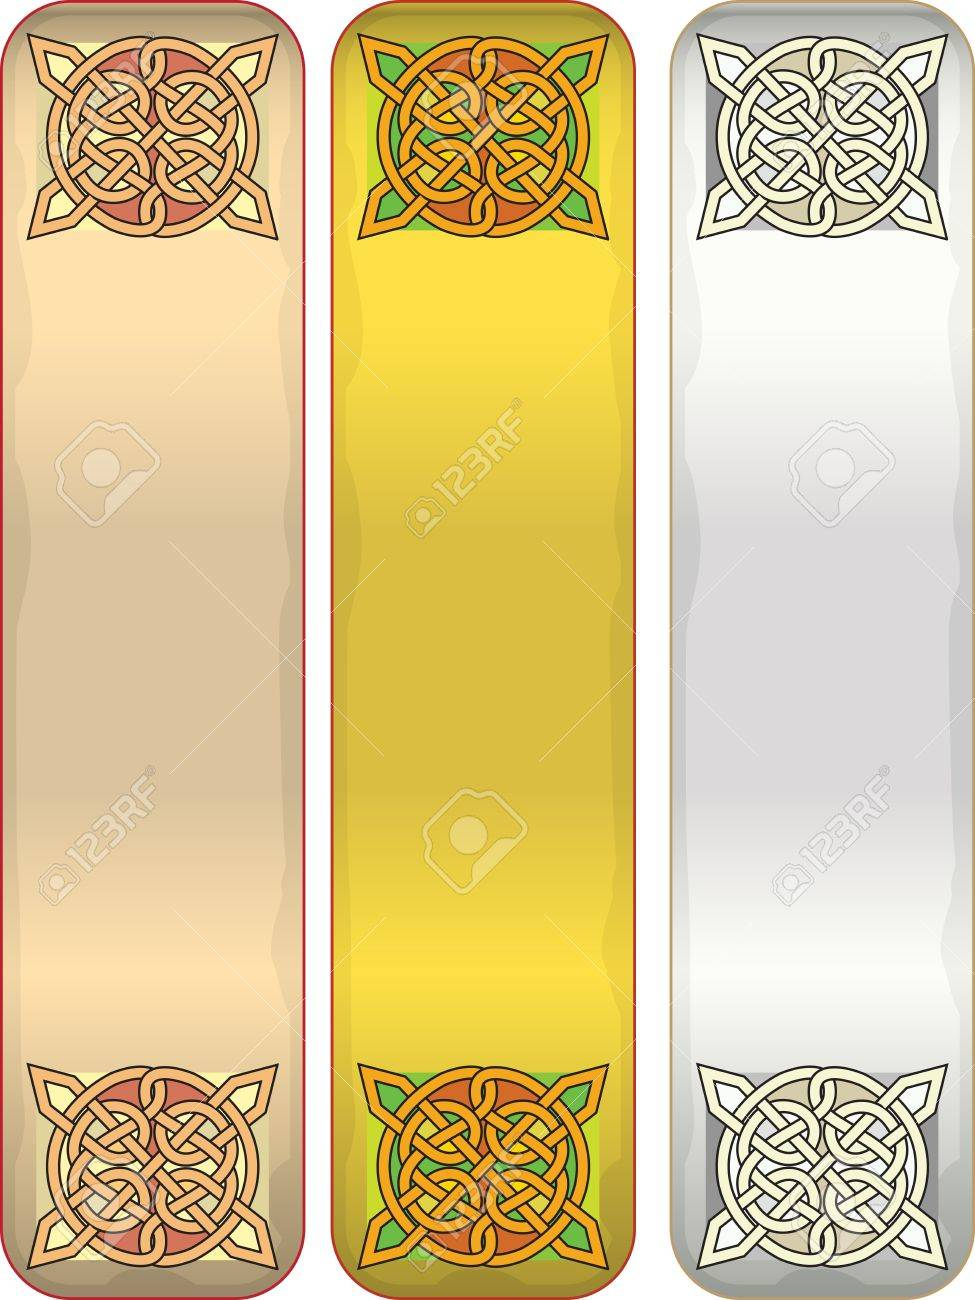 Elements of design of a tape with celtic an ornament Stock Vector - 13998816